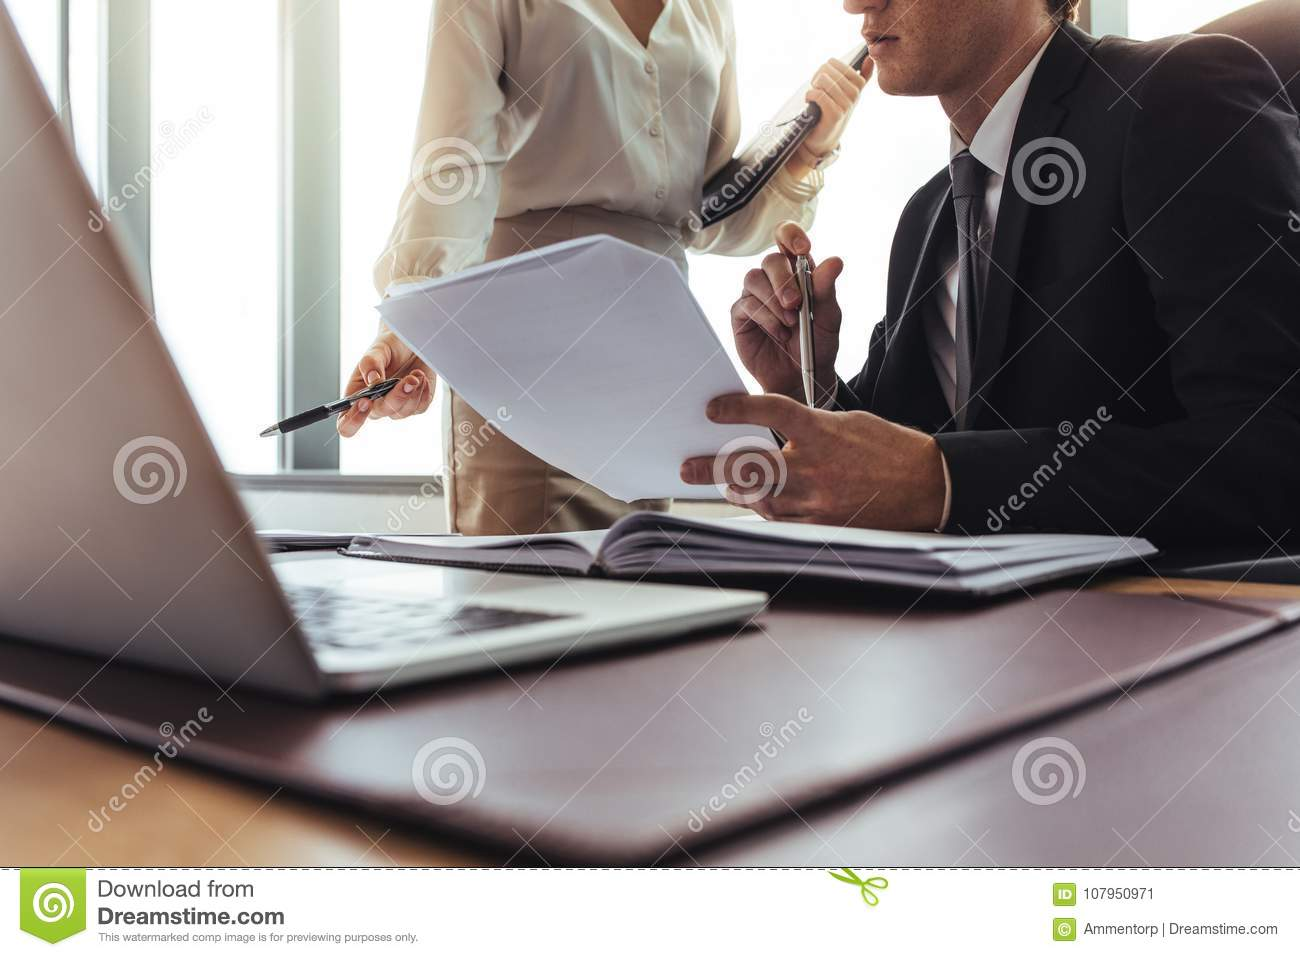 Colleagues comparing documents in office